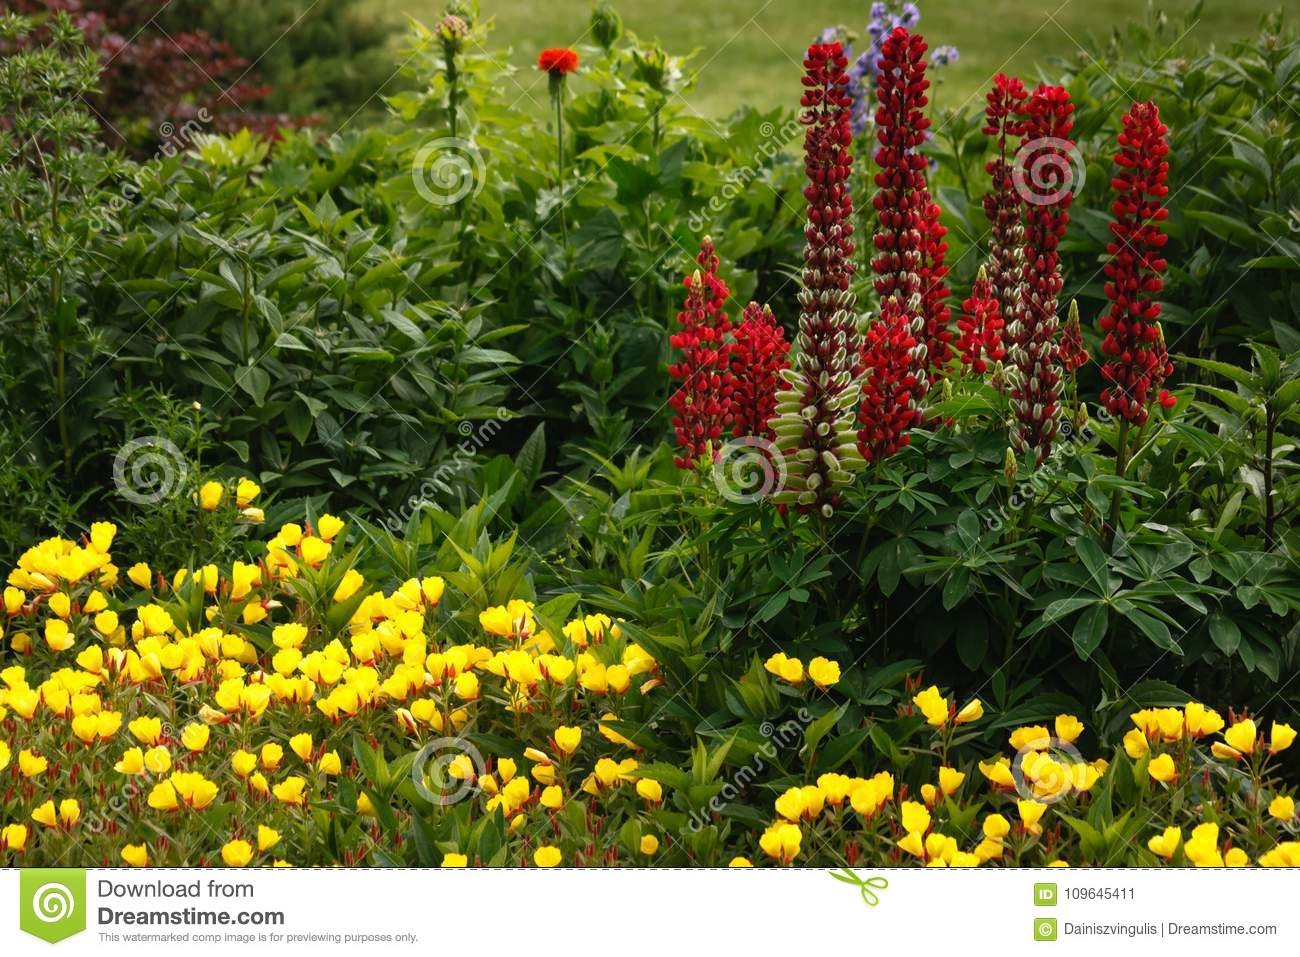 Dream Garden With Flowers In The Summer Stock Image Image Of